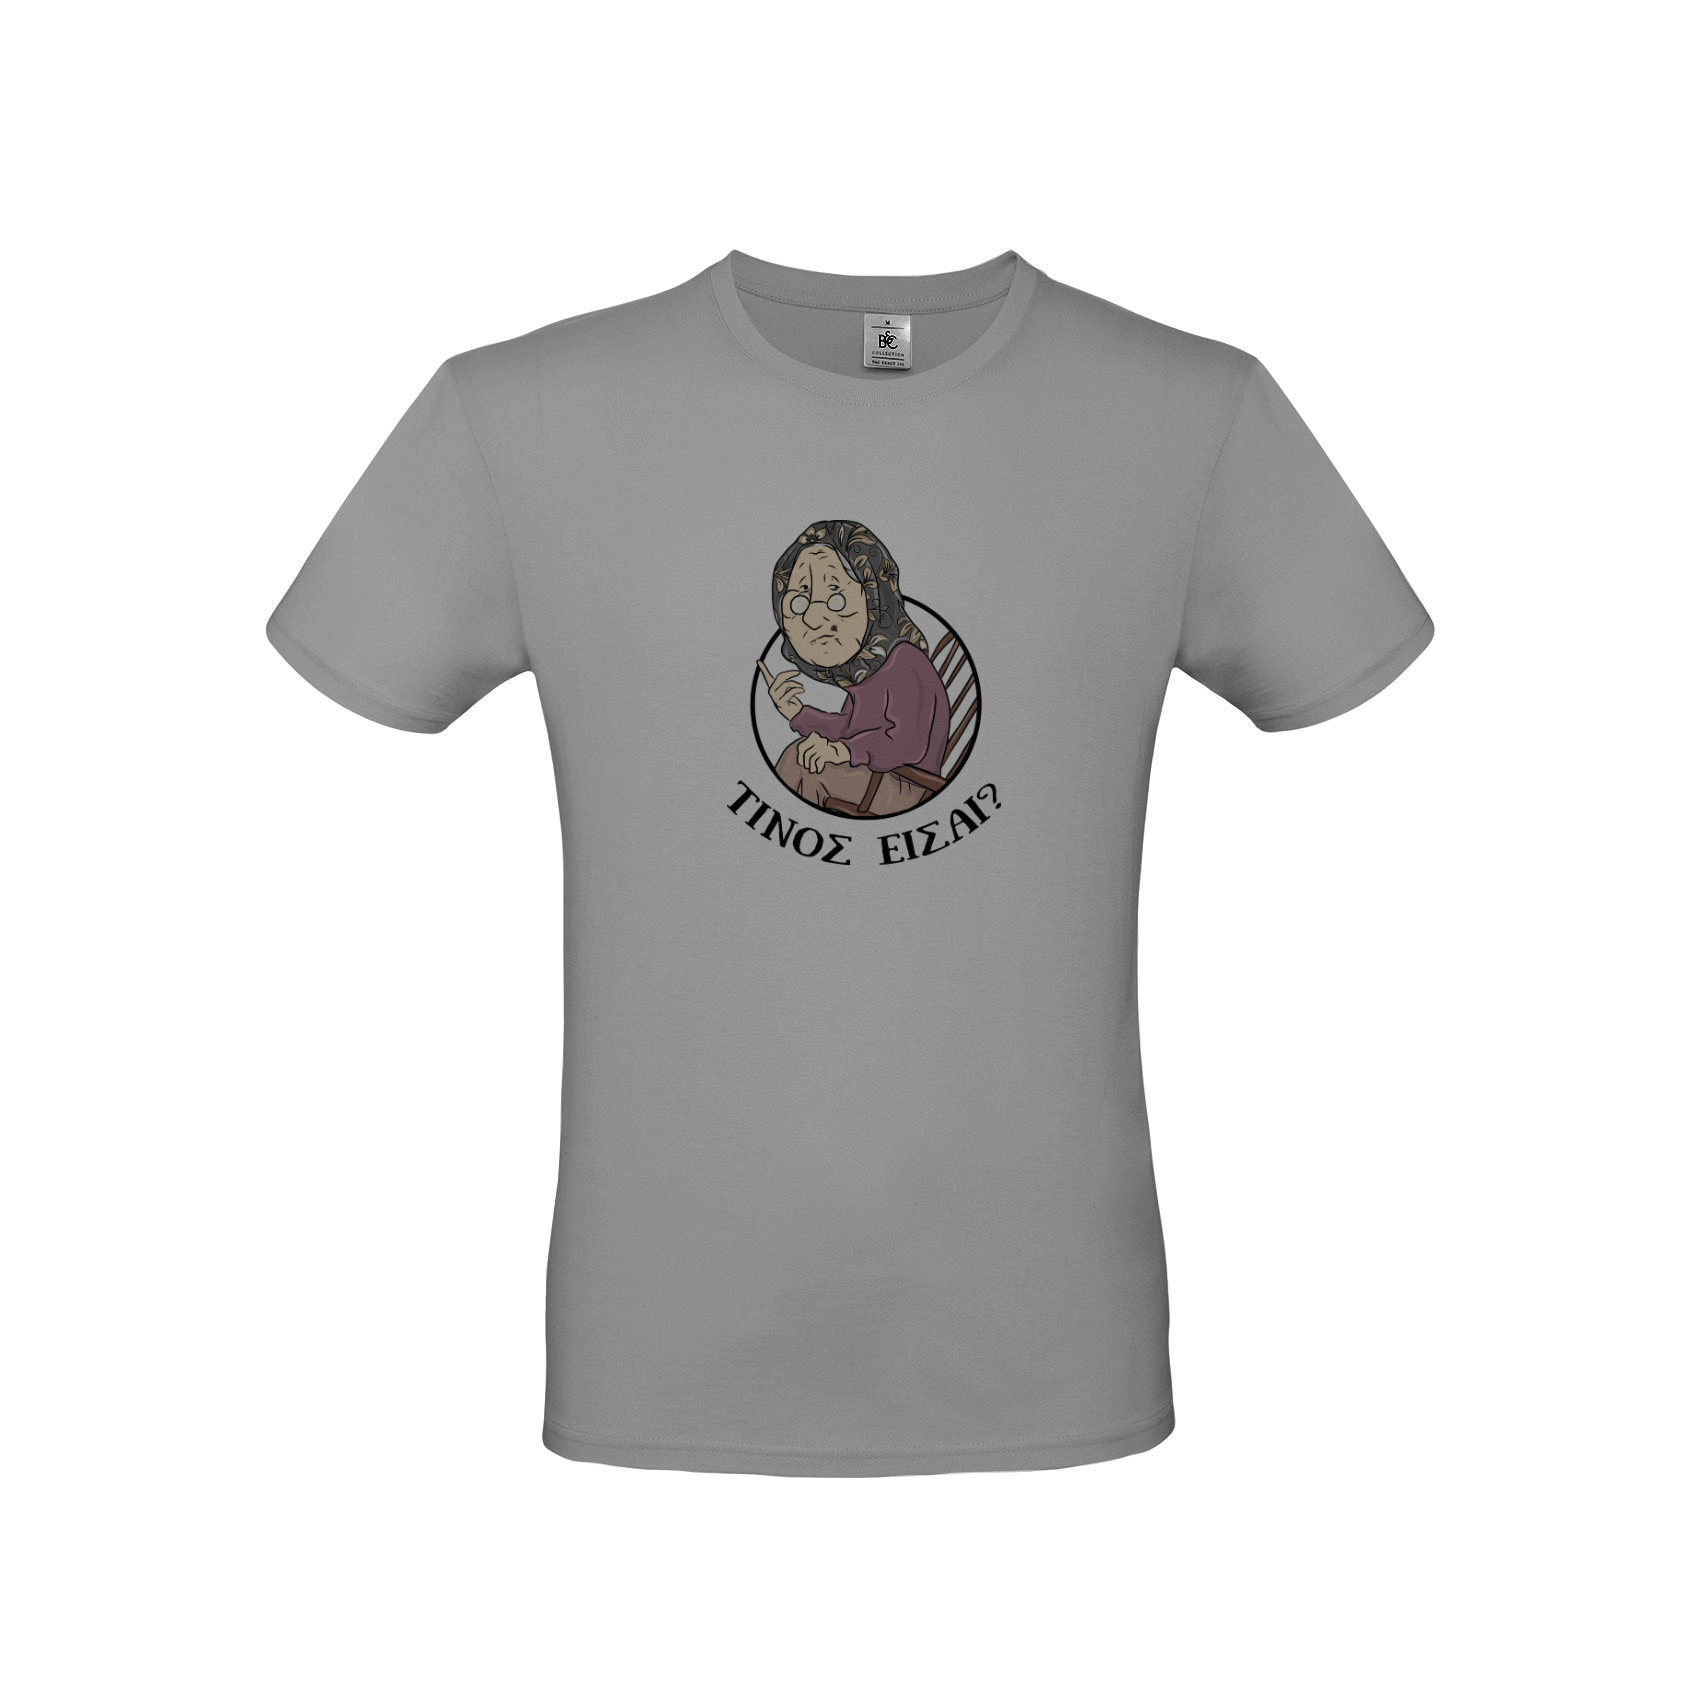 Picture of Tinos Eisai? T-shirt